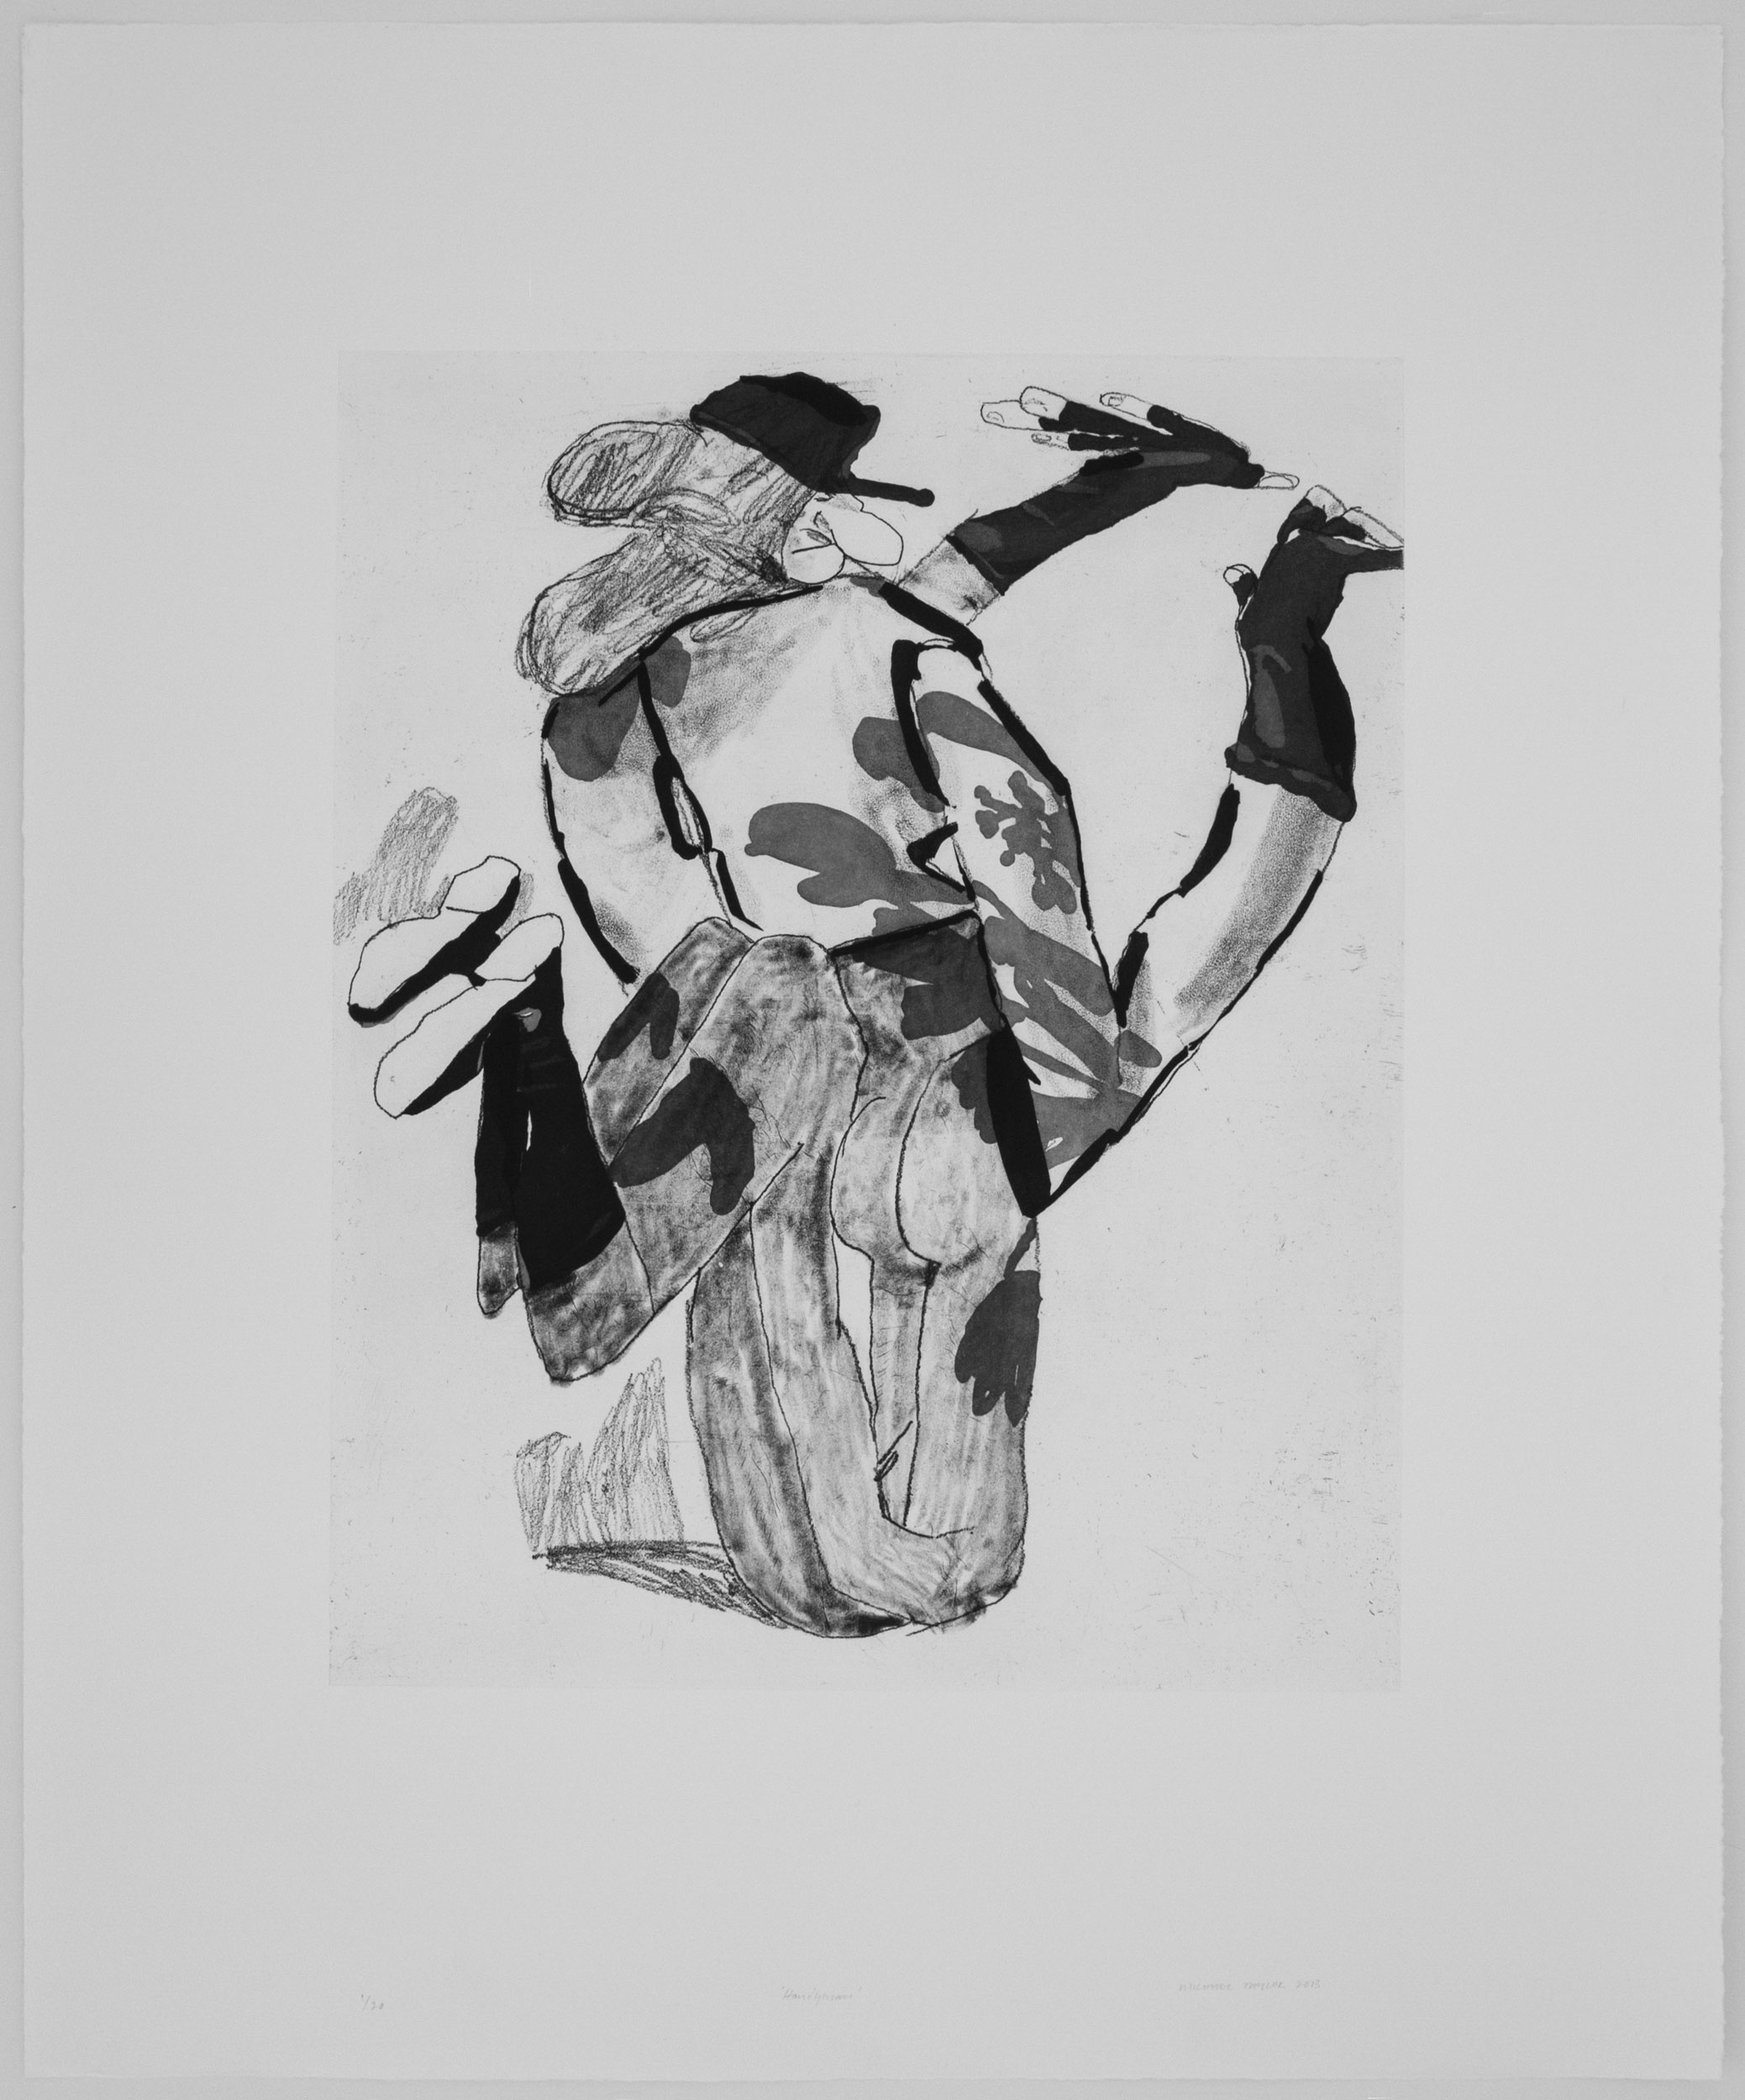 Michael Taylor, Prints, Etchings